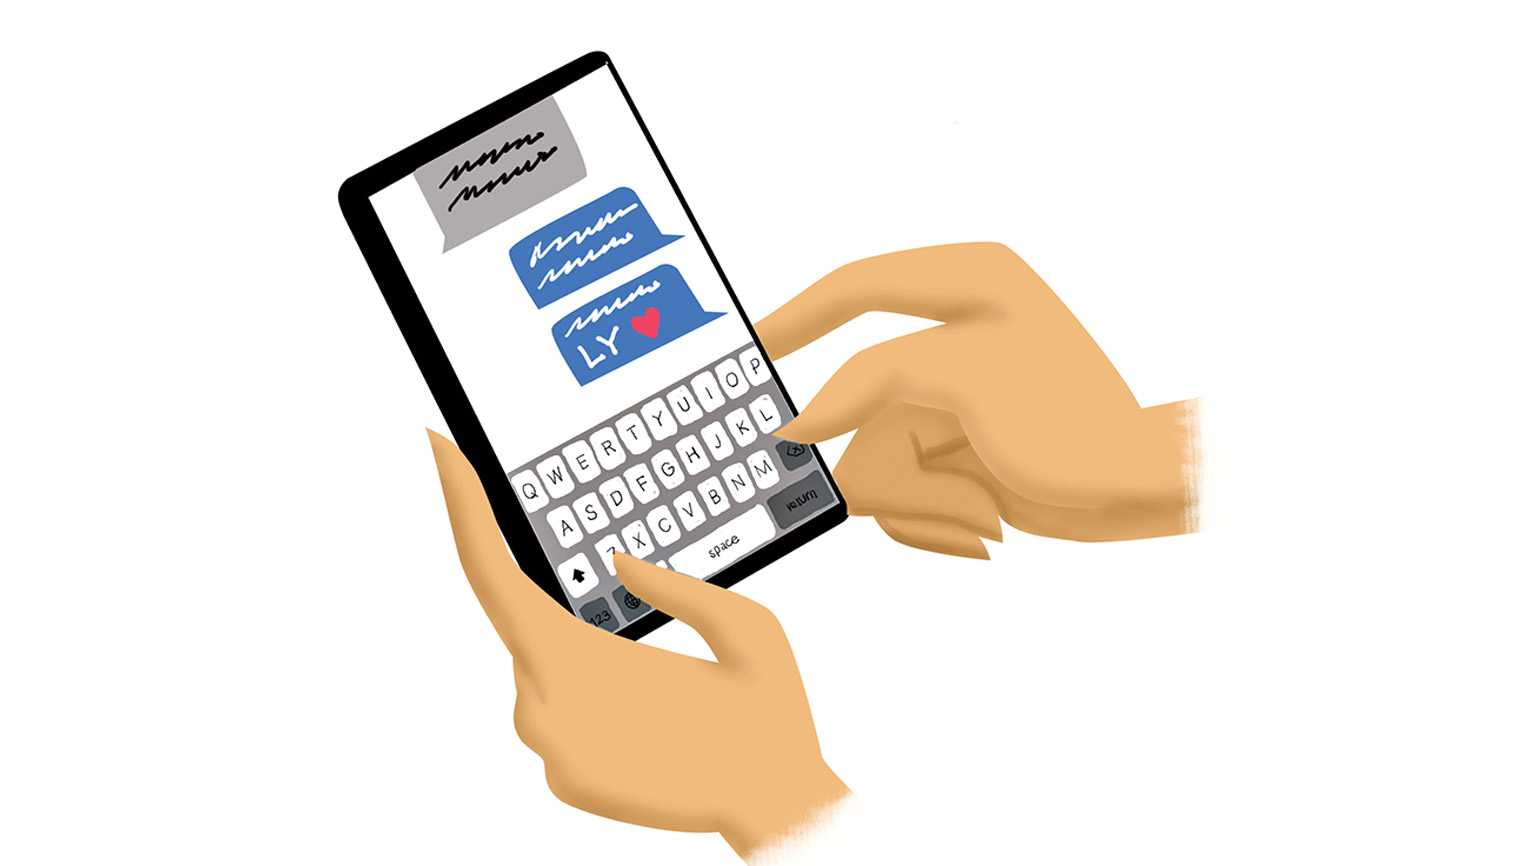 An artist's rendering of someone holding a phone and texting LY.